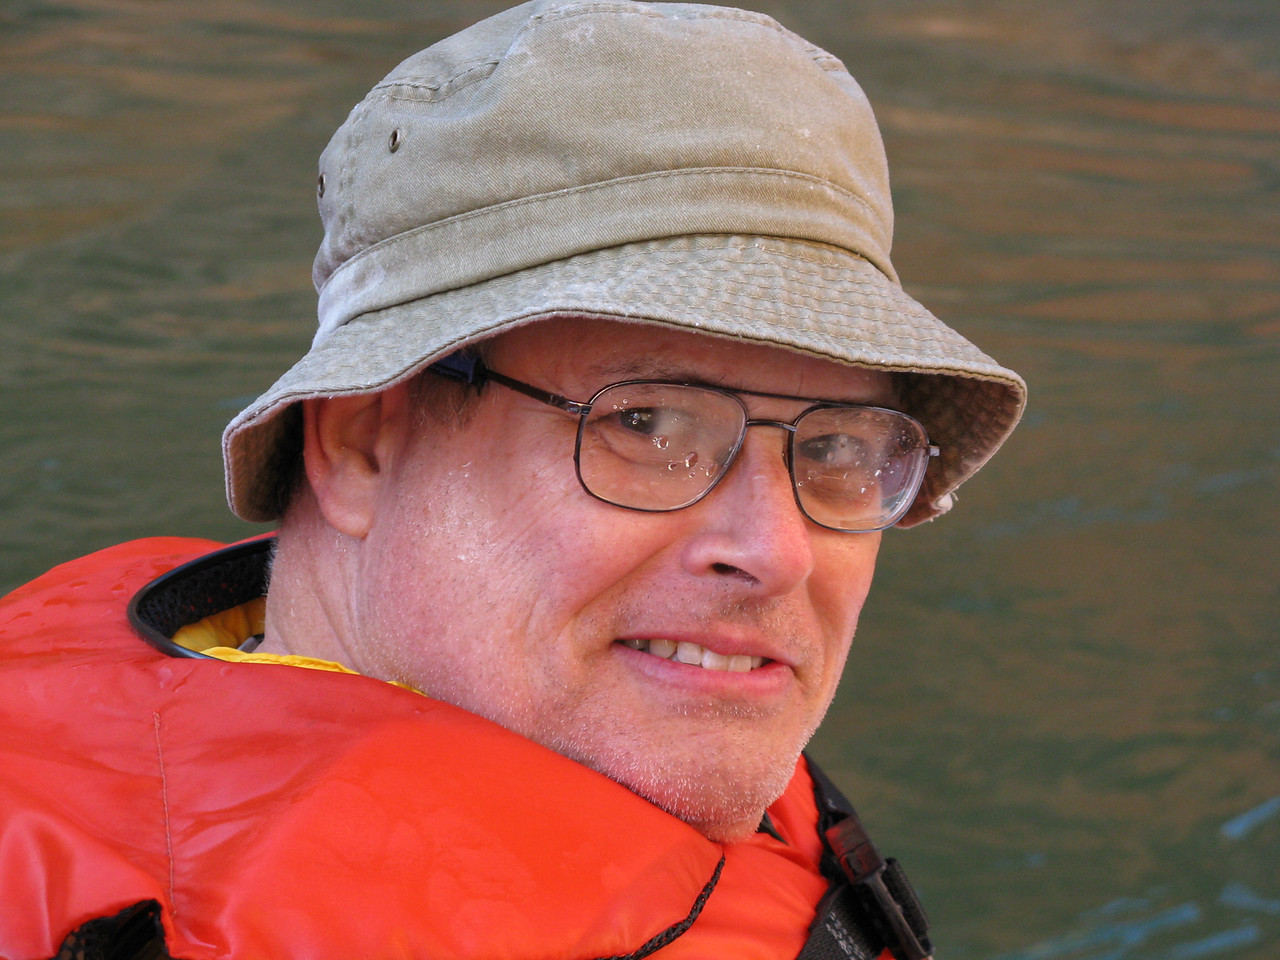 How do you tell a happy river runner?  By the water on his smiling face and glasses!  Wendell.